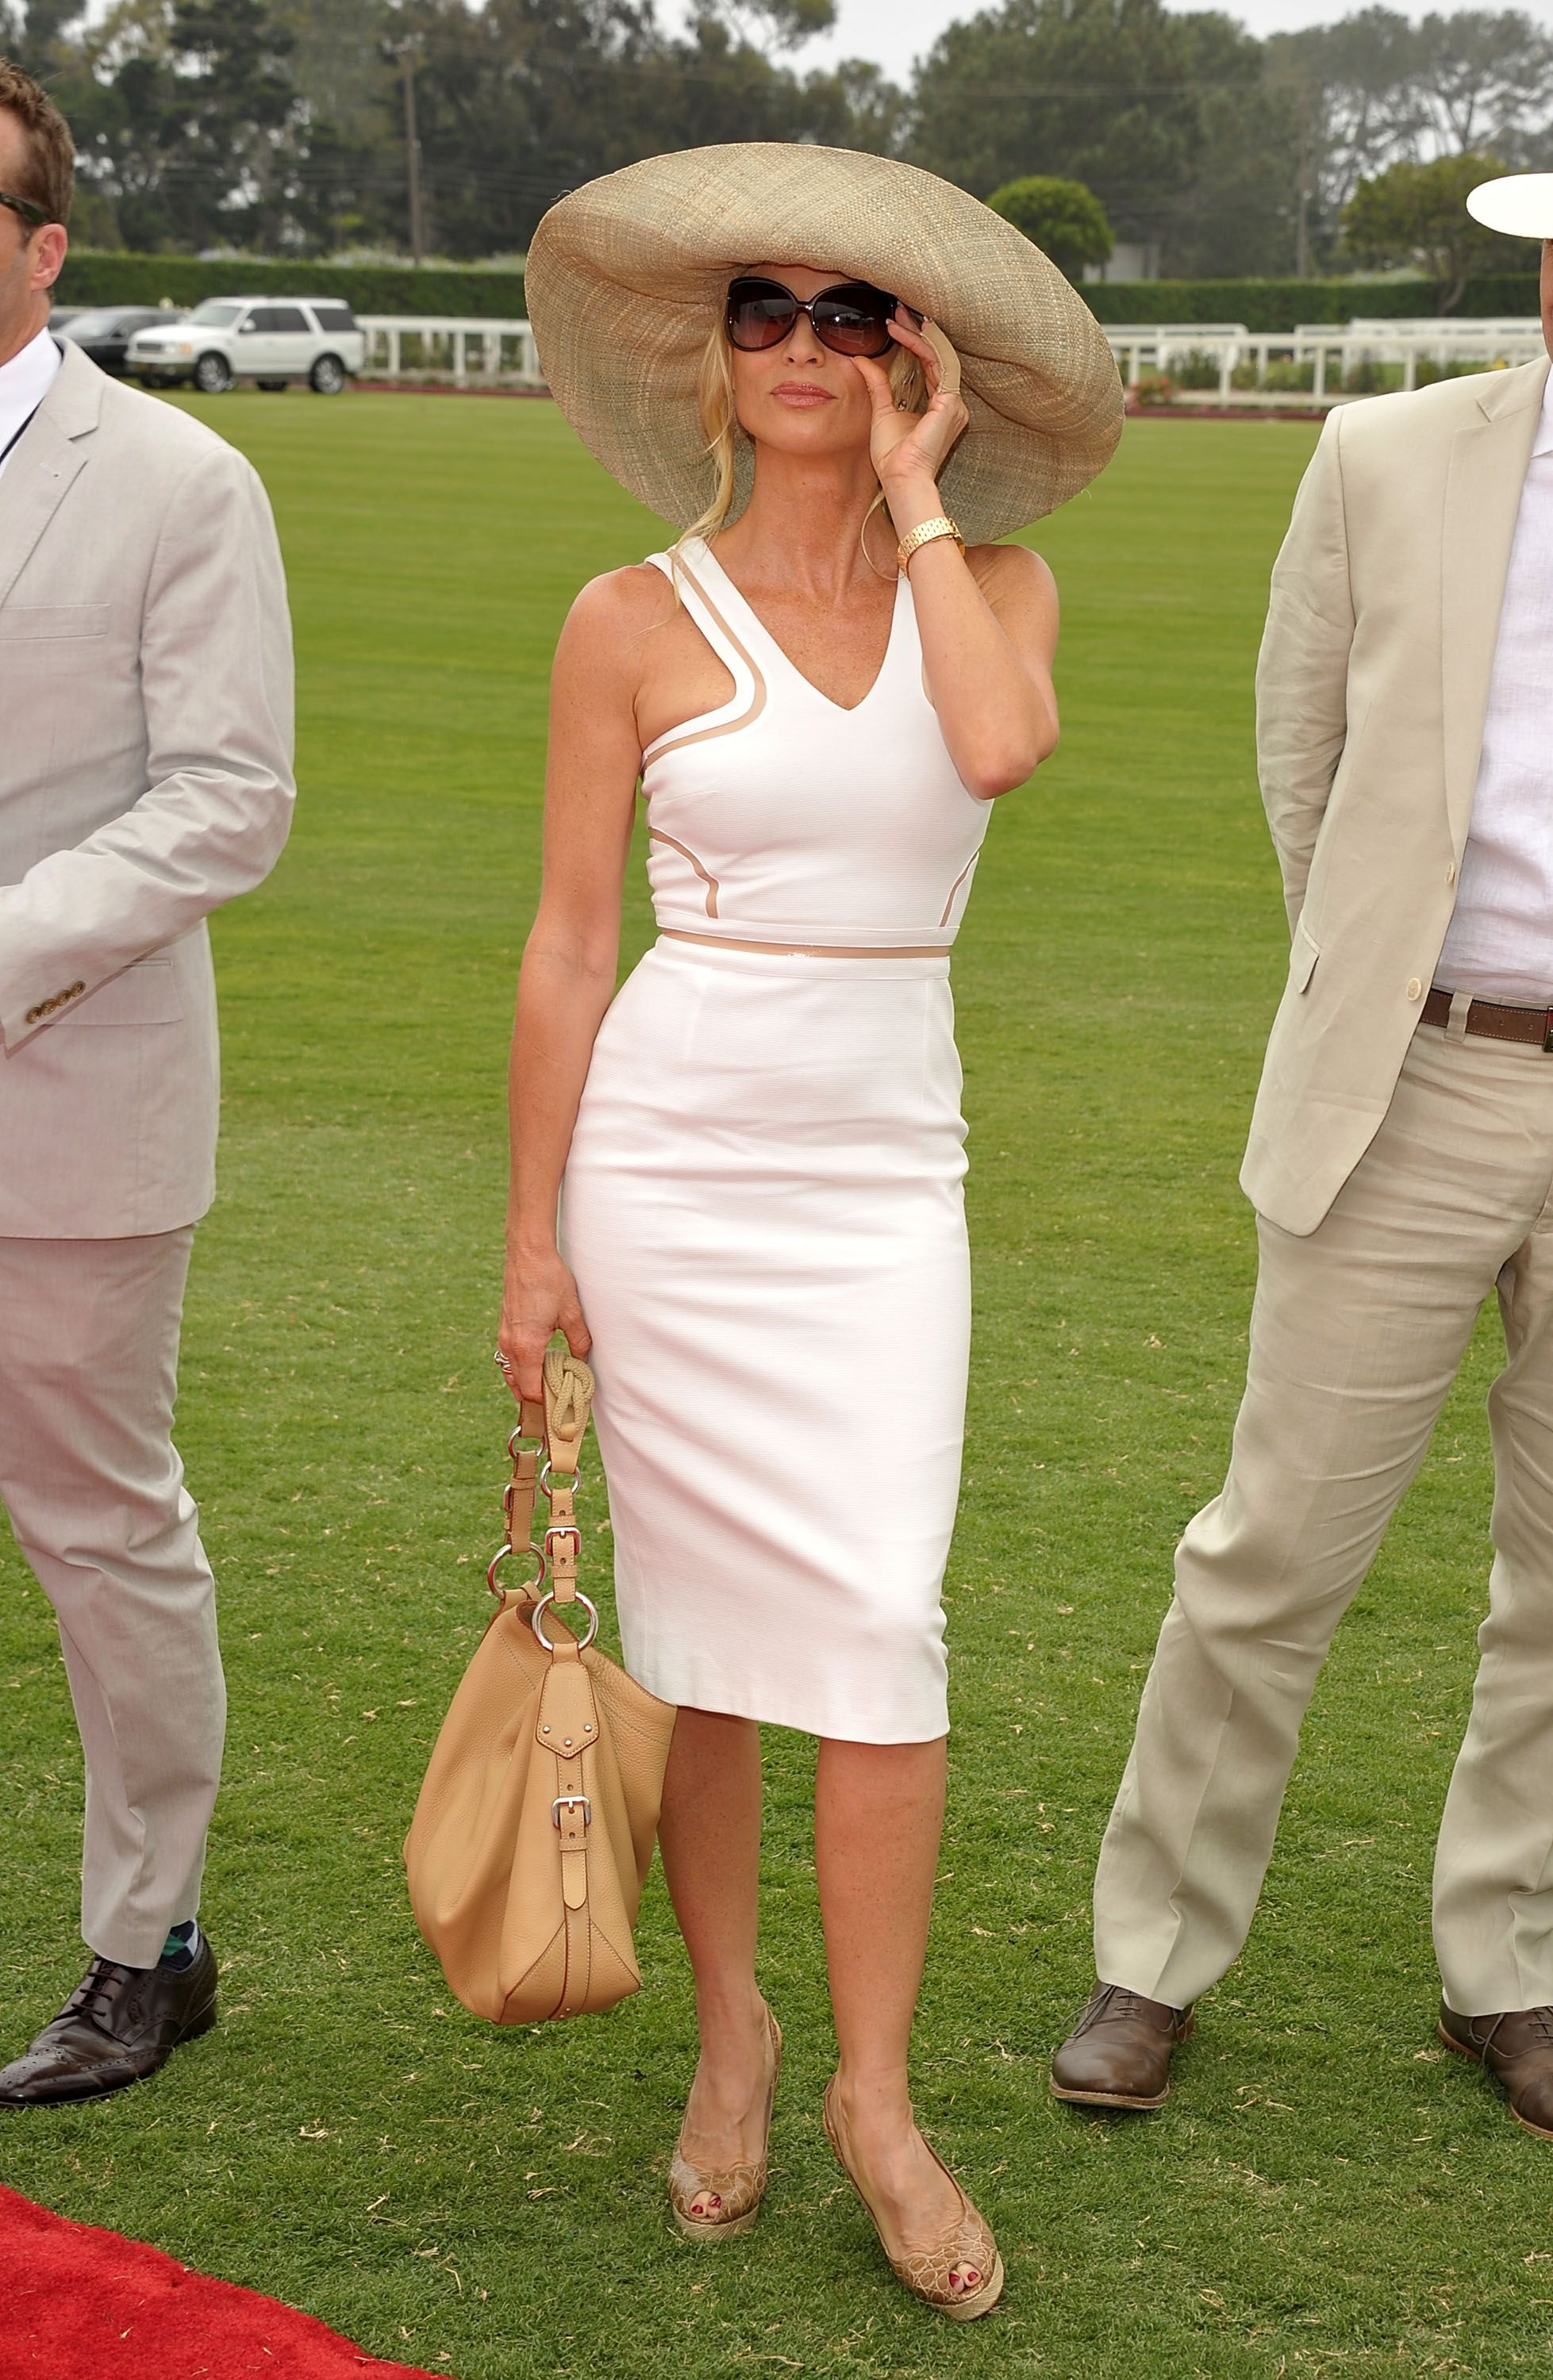 How To Wear A Big Hat Polo Match Outfit Polo Match Outfits For Women Derby Outfits